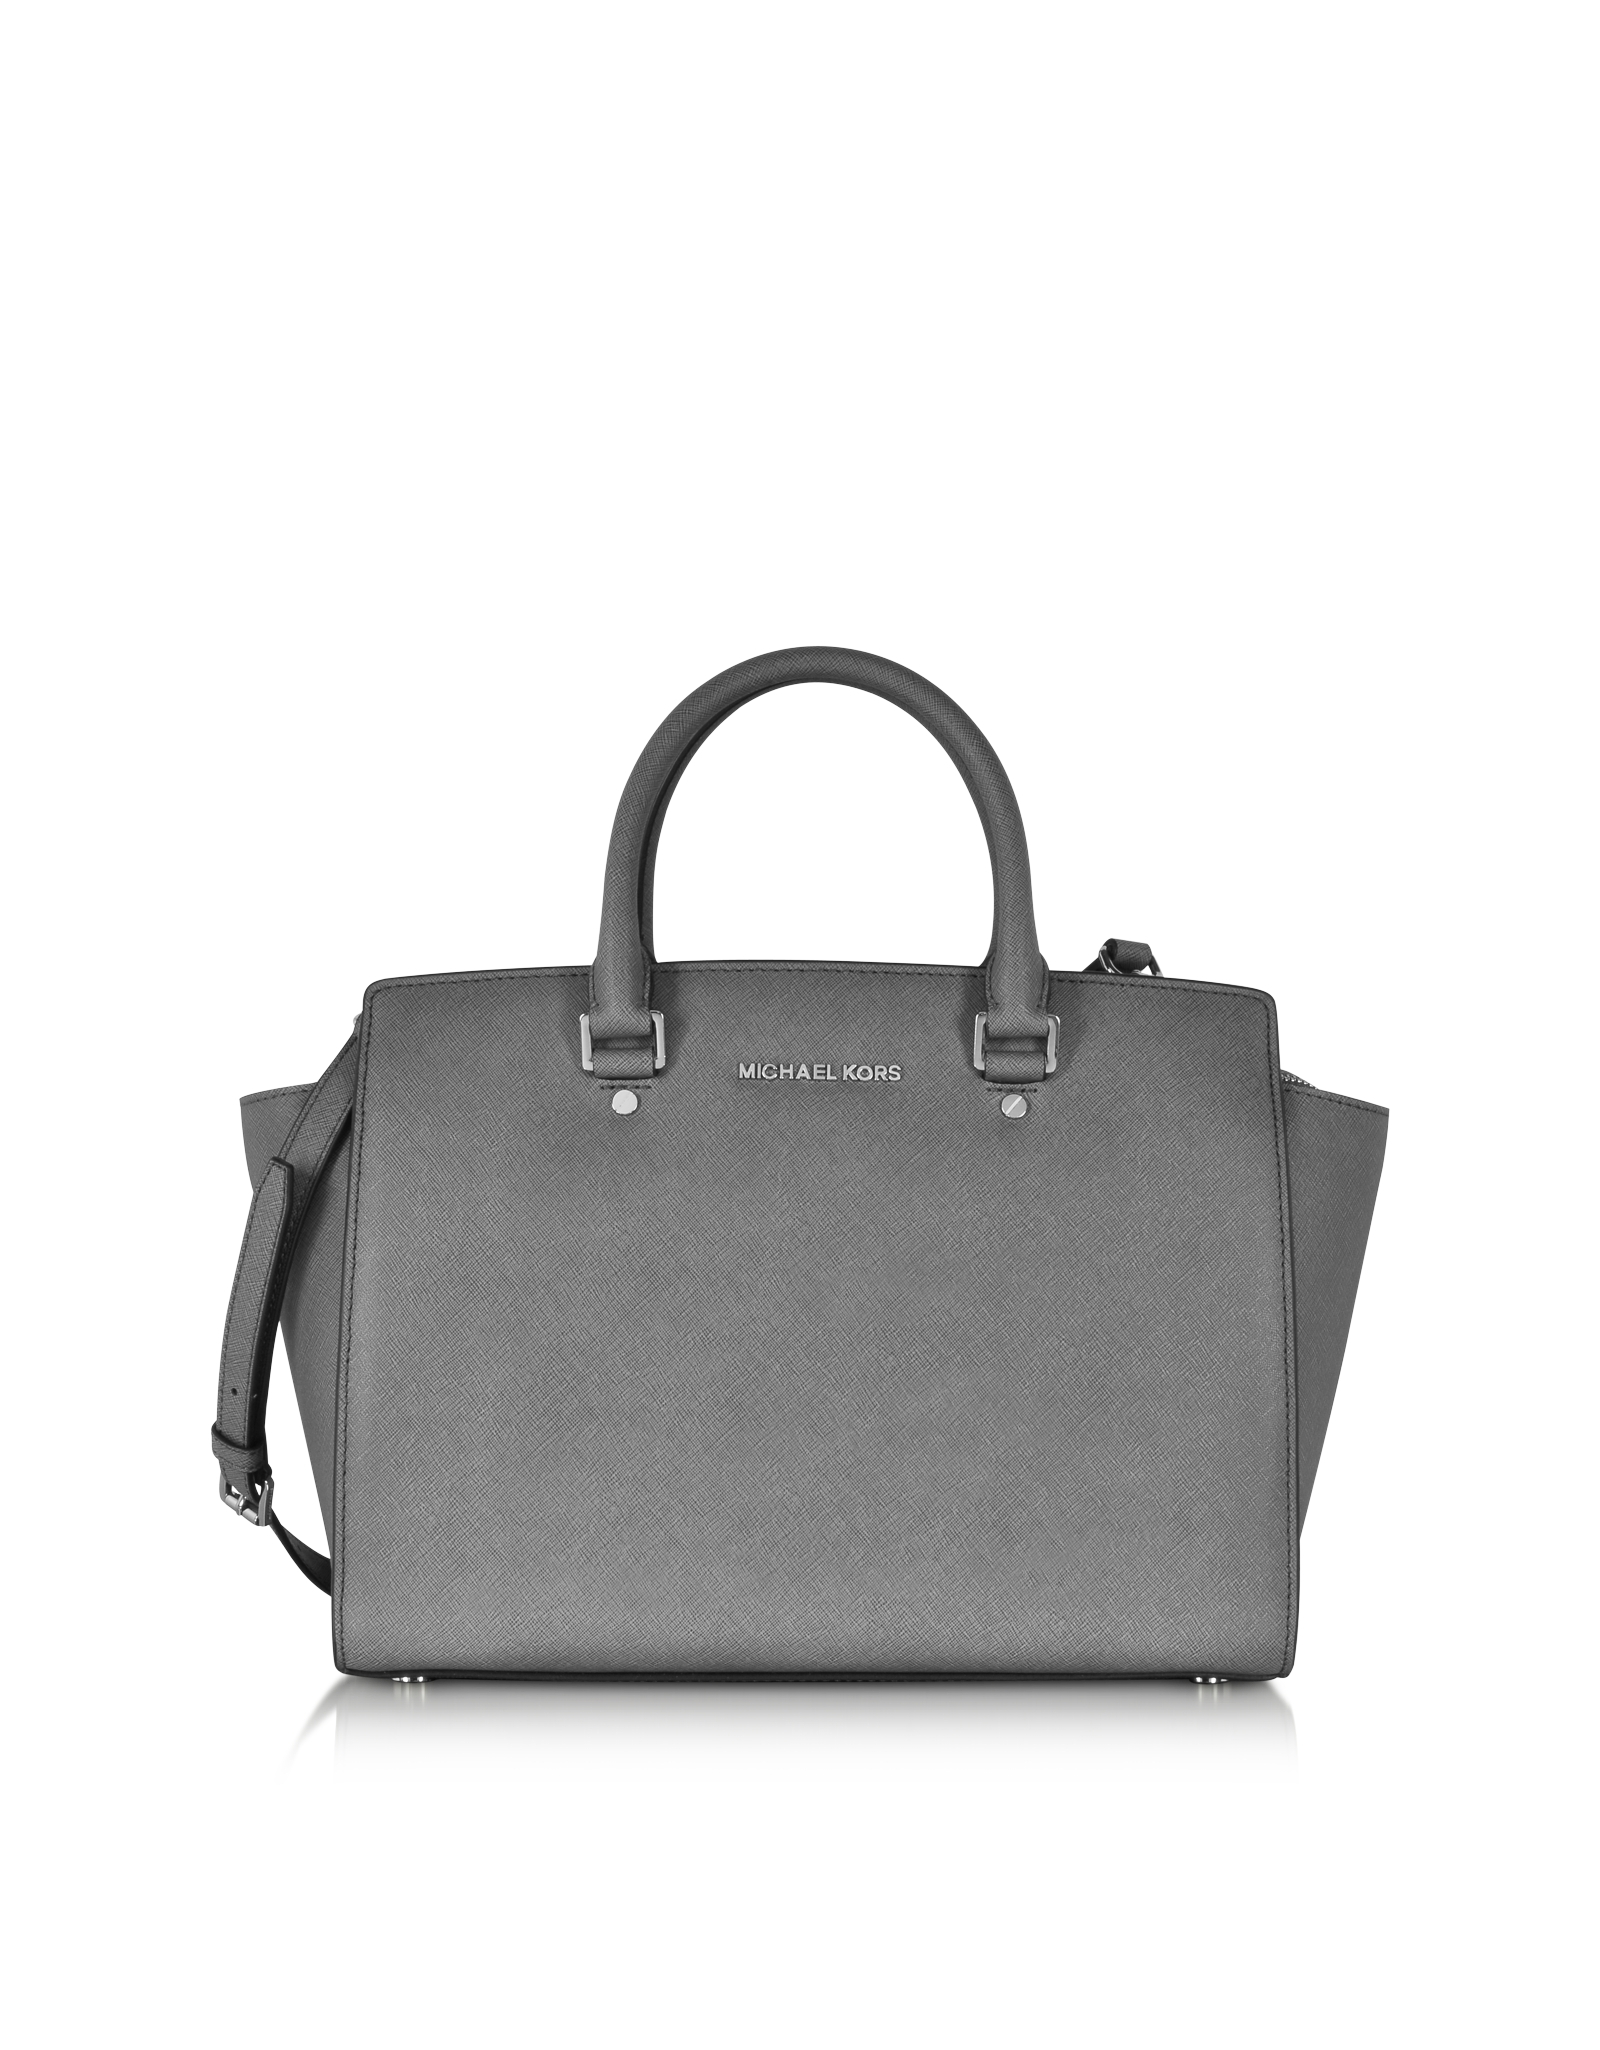 michael kors selma medium saffiano leather satchel in gray lyst. Black Bedroom Furniture Sets. Home Design Ideas